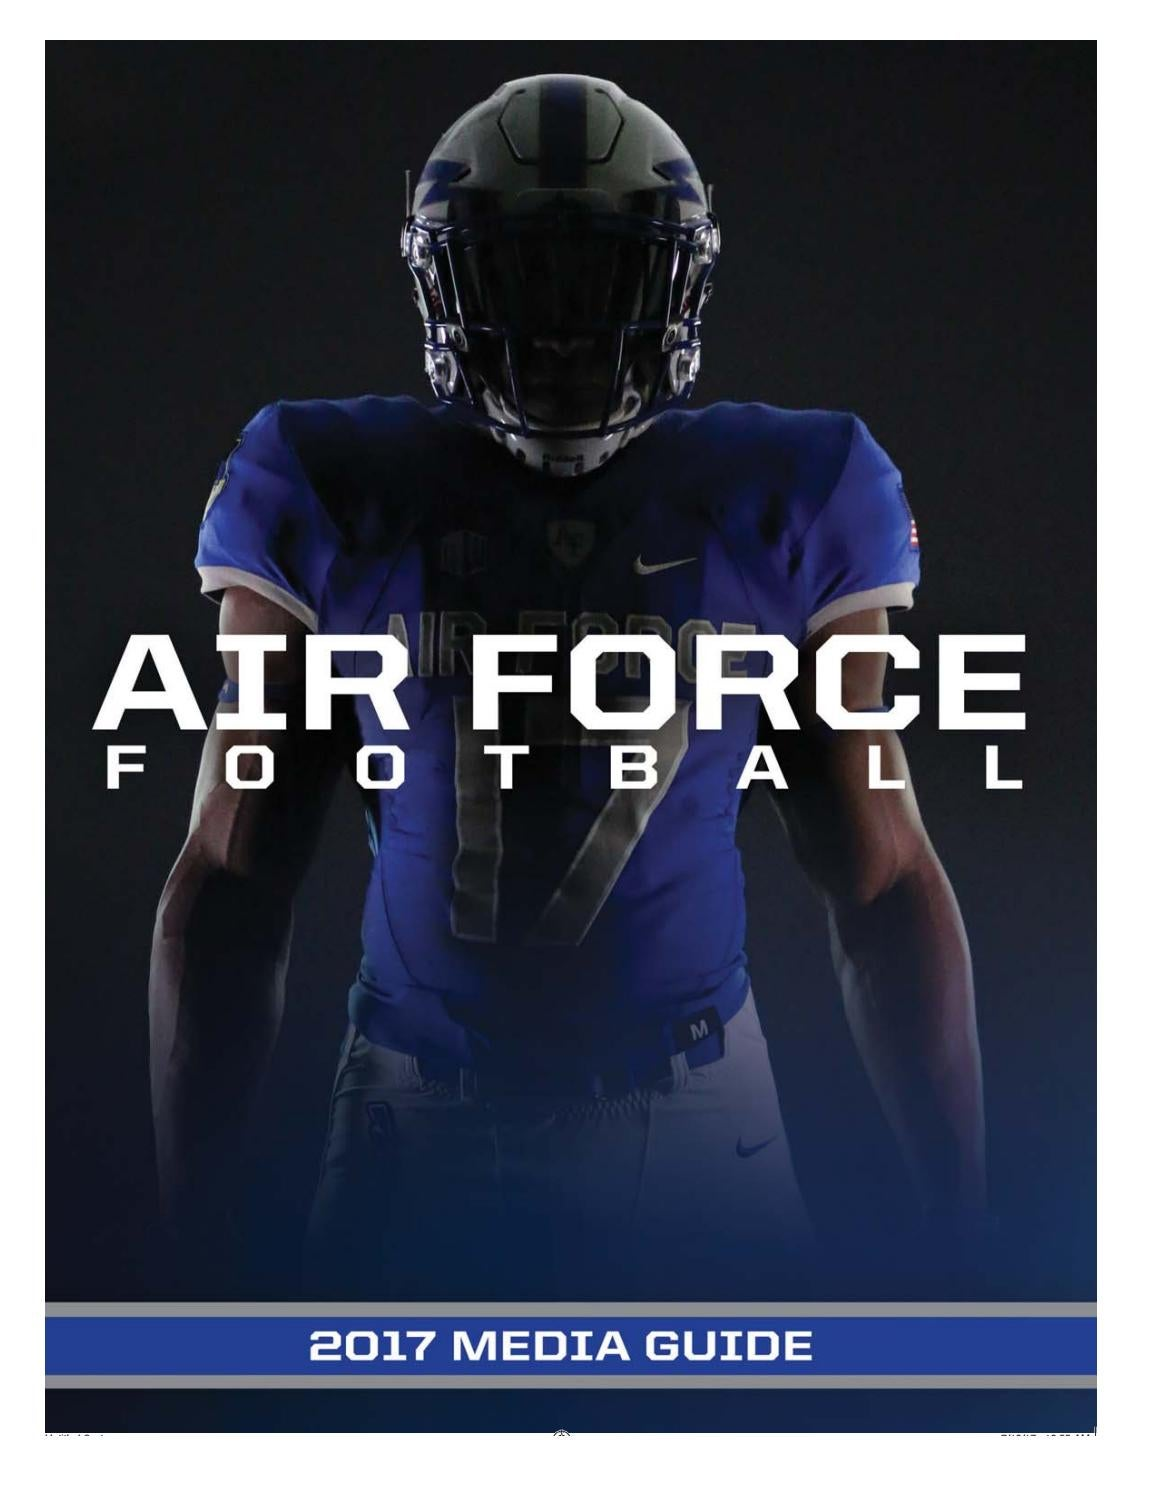 c0fc95a96 2017 Air Force football media guide by Dave Toller - issuu